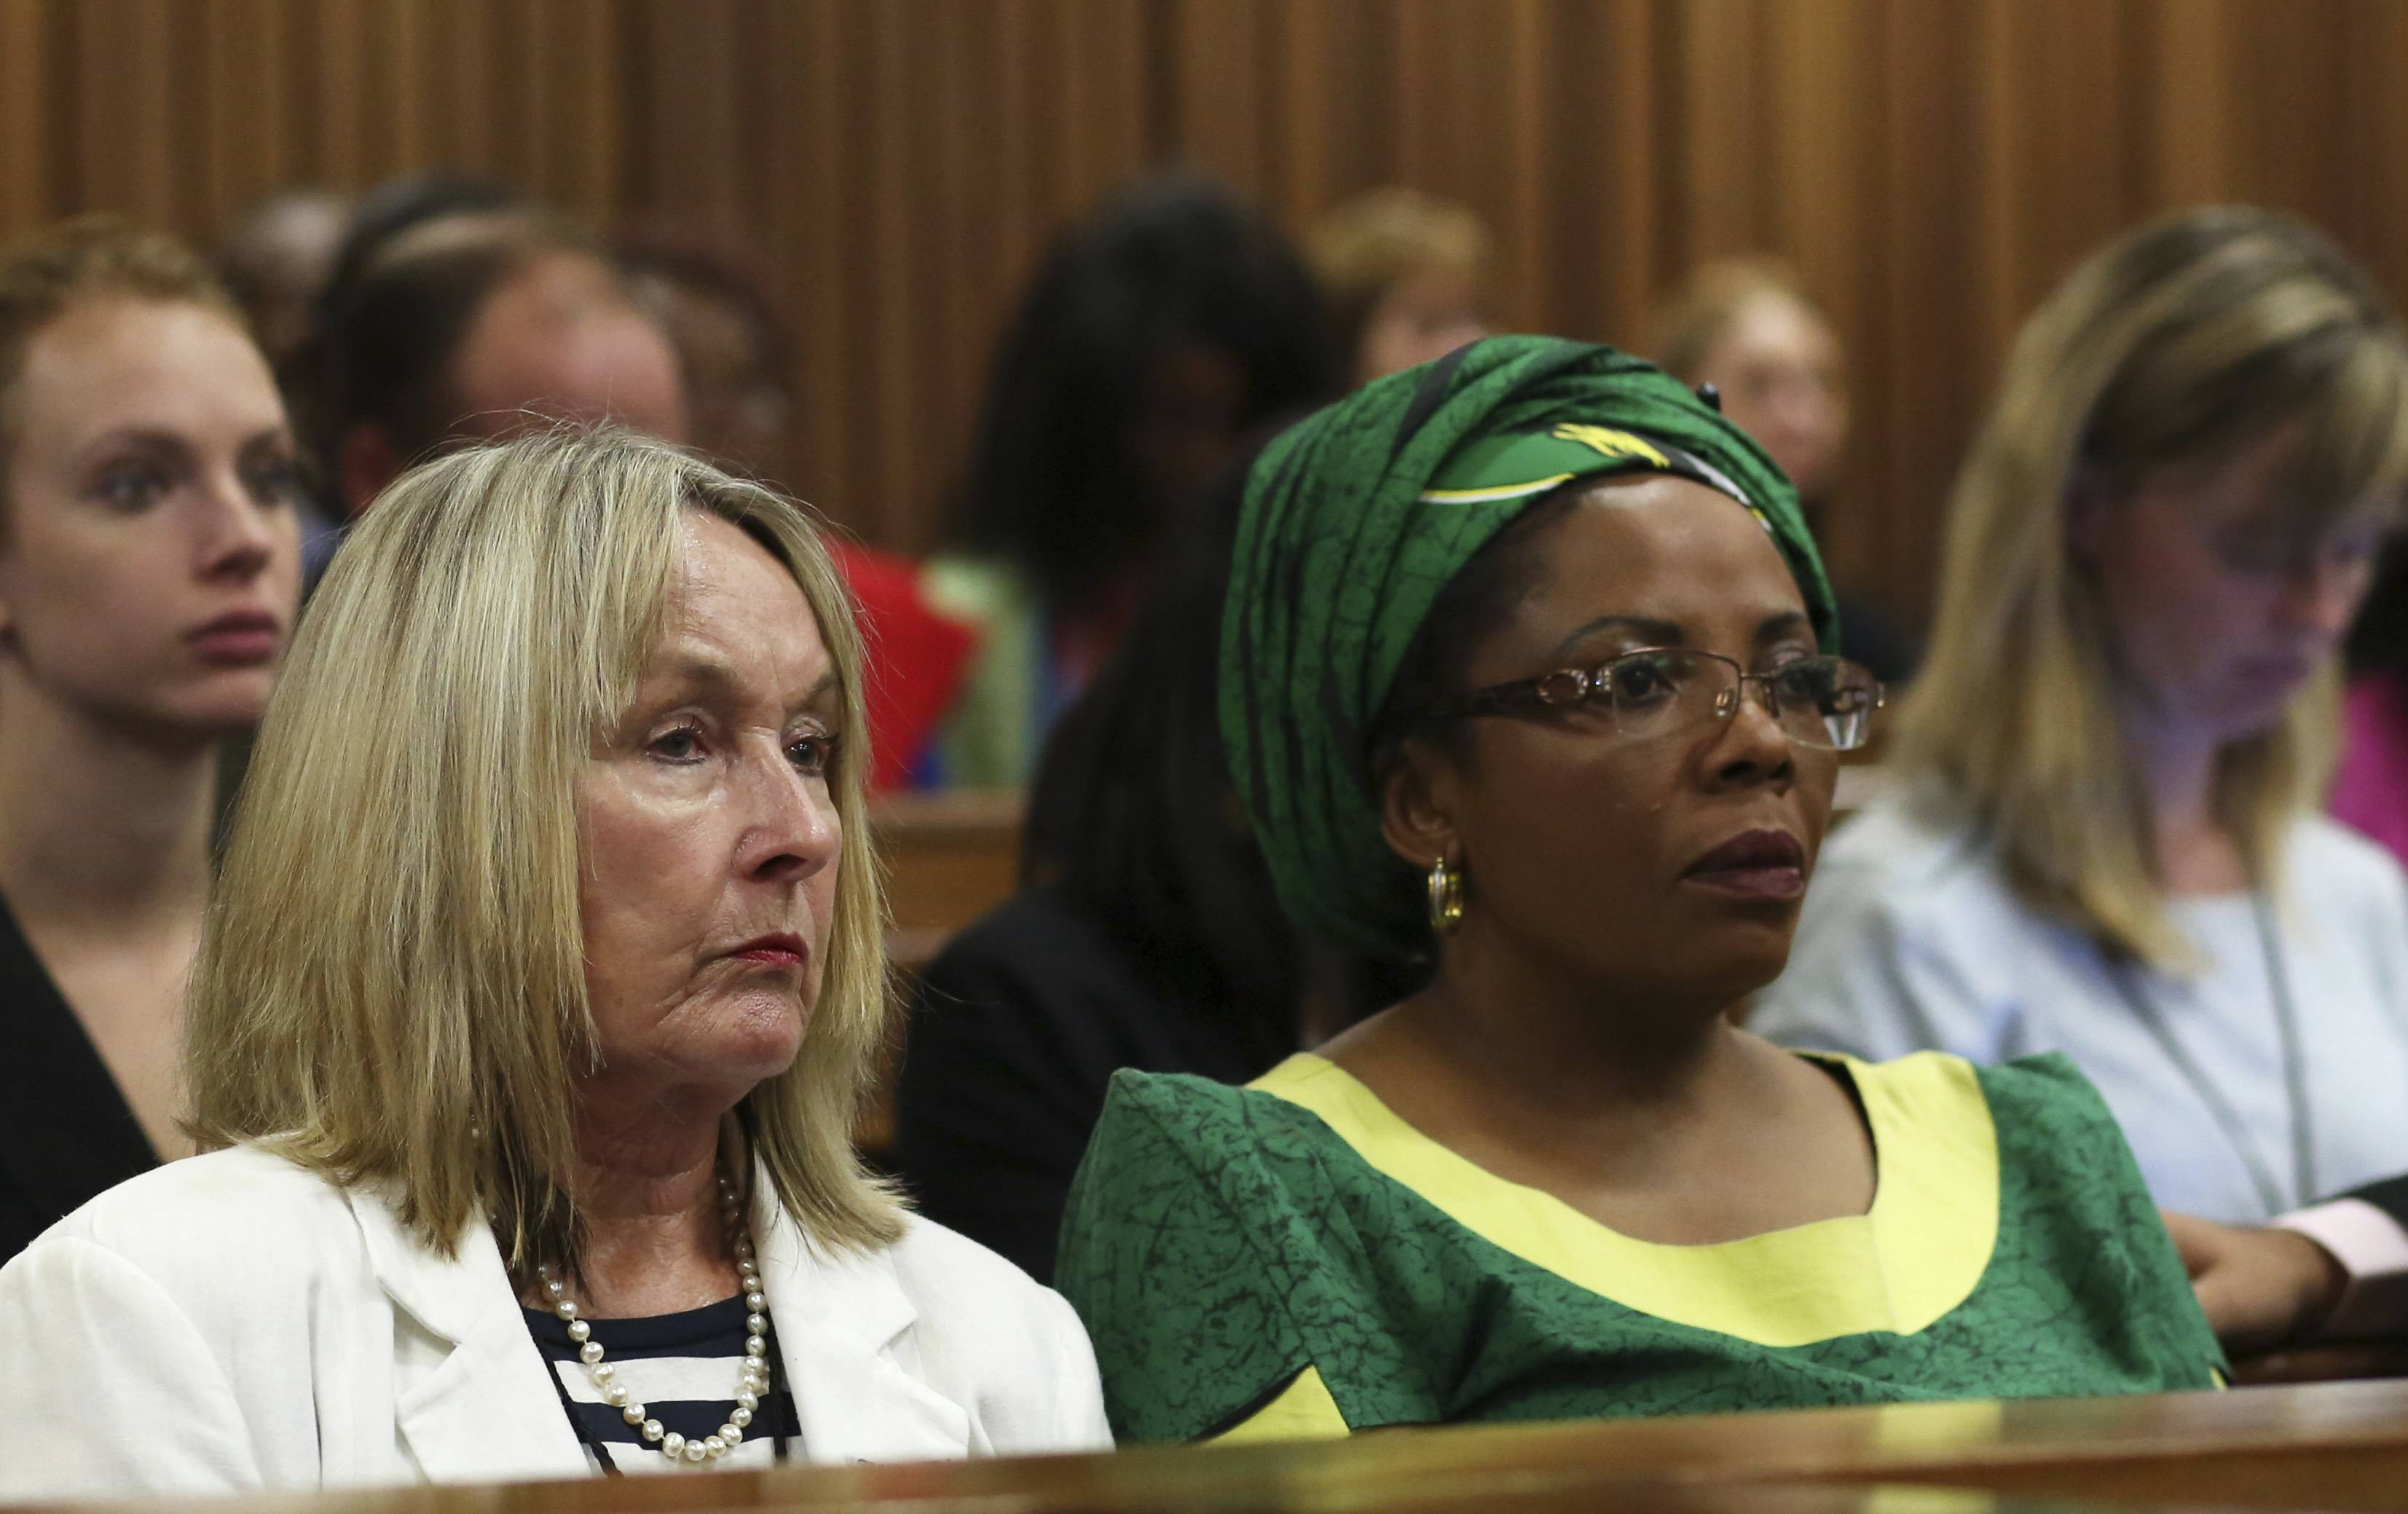 June Steenkamp, mother of Reeva Steenkamp, left, sits with African National Congress Women's League spokesperson Jackie Mofokeng, right, during Oscar Pistorius' trial at the high court in Pretoria, South Africa, Wednesday. Pistorius is charged with murder for the shooting death of his girlfriend Reeva Steenkamp on Valentine's Day in 2013.